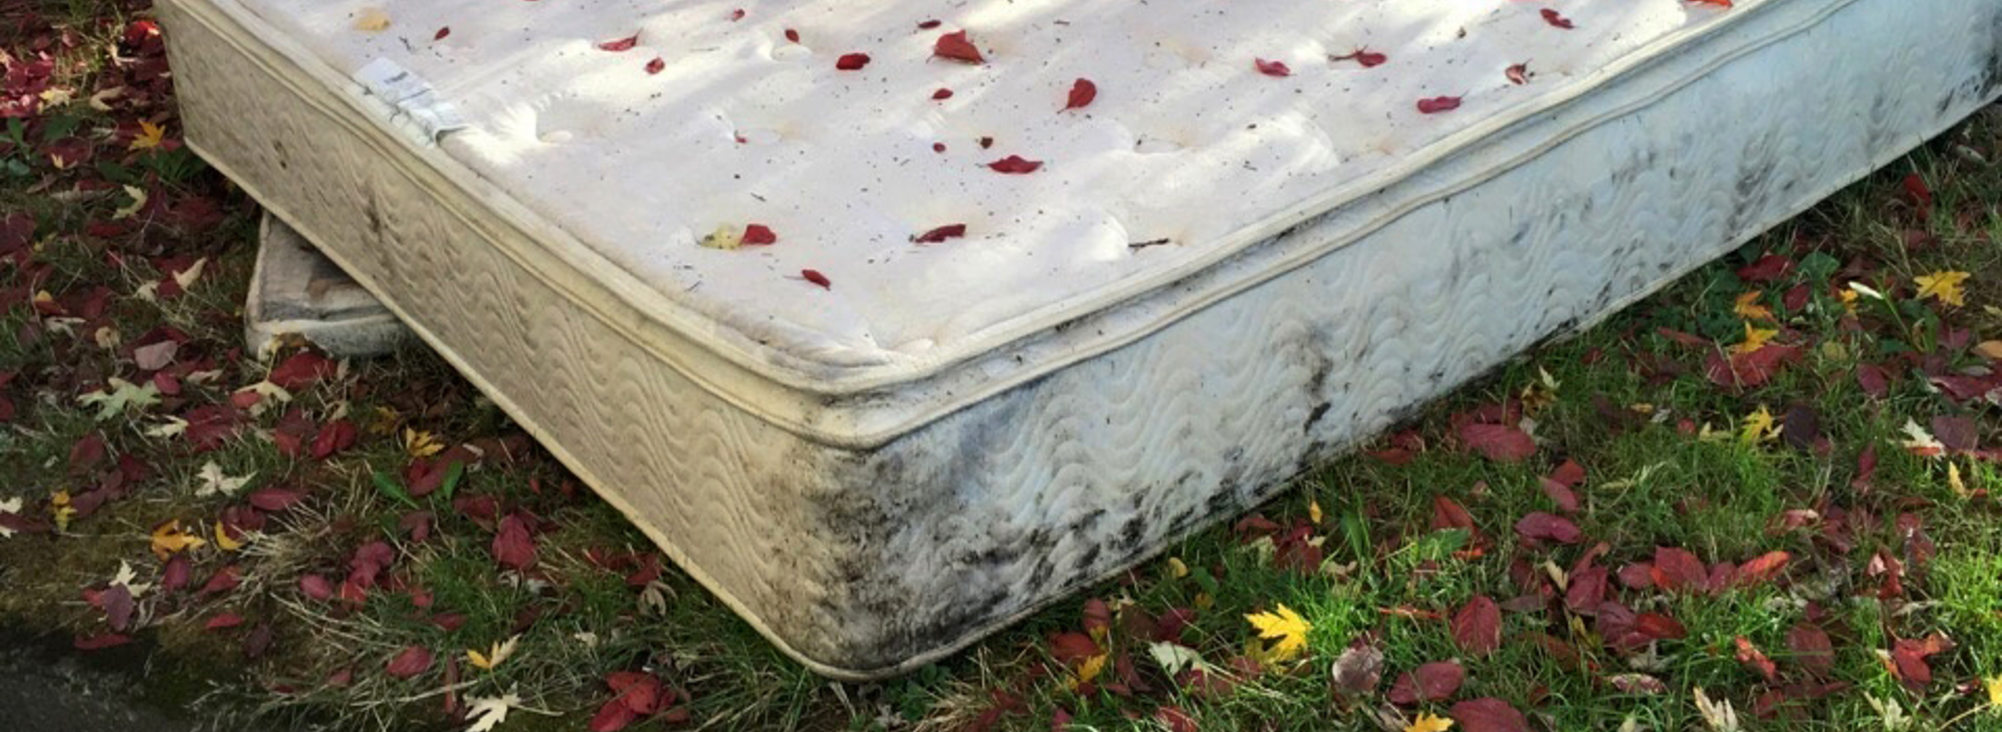 fallen leaves rest on a mattress dumped on a city curb